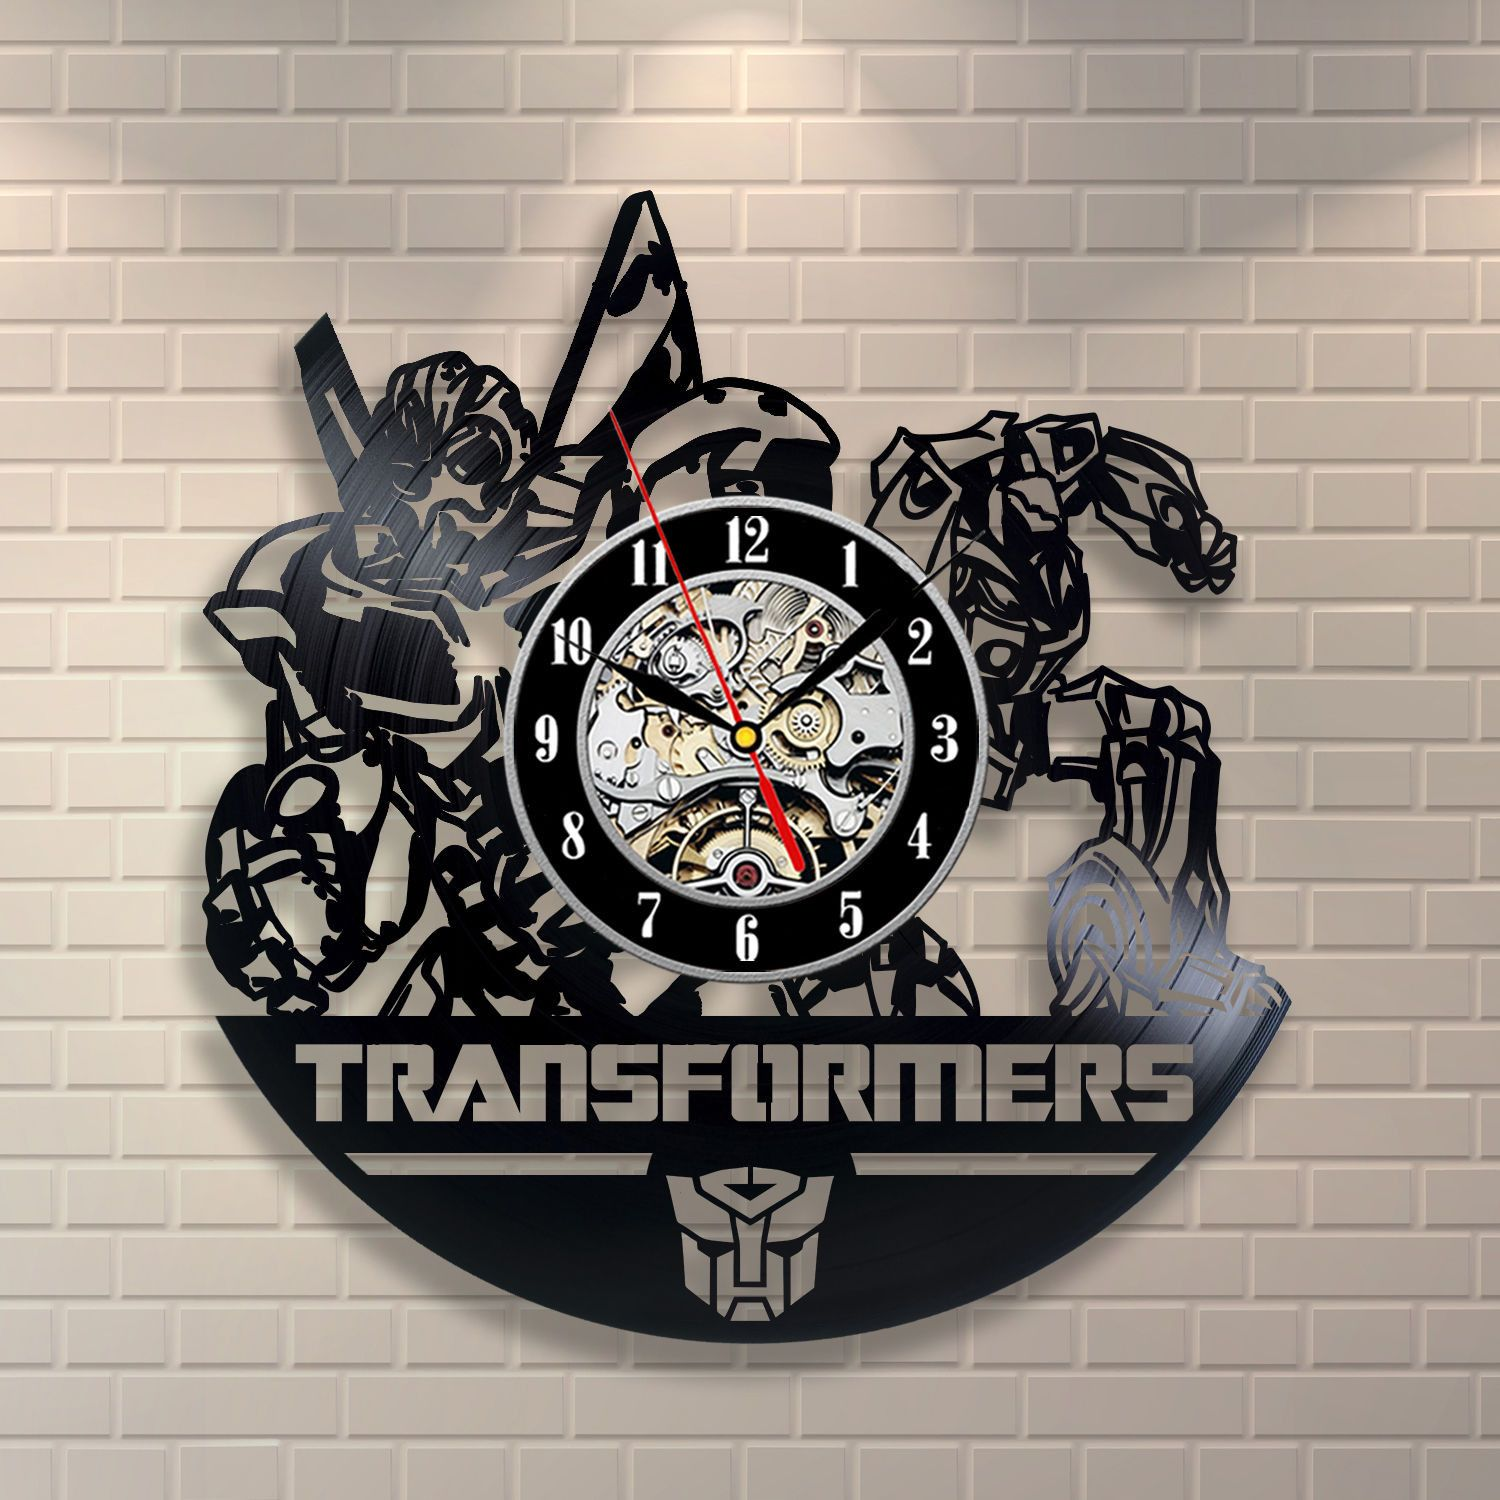 Transformers vinyl record clock want these haluuuun pinterest transformers vinyl record clock amipublicfo Choice Image